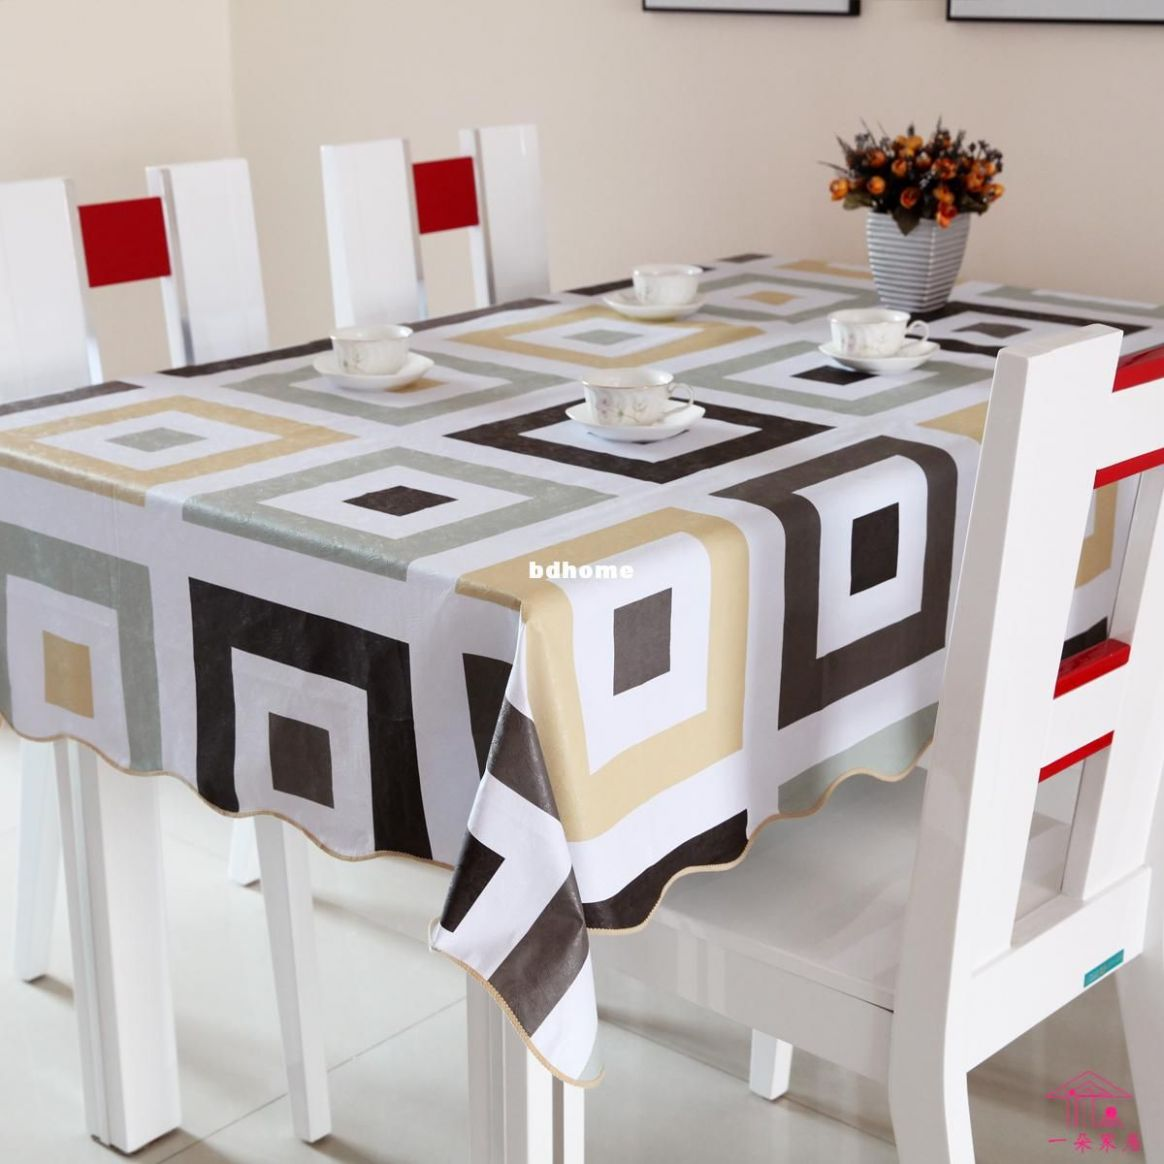 8 Marvelous Picture of Tableclothes Ideas Dining Room   Dining ..